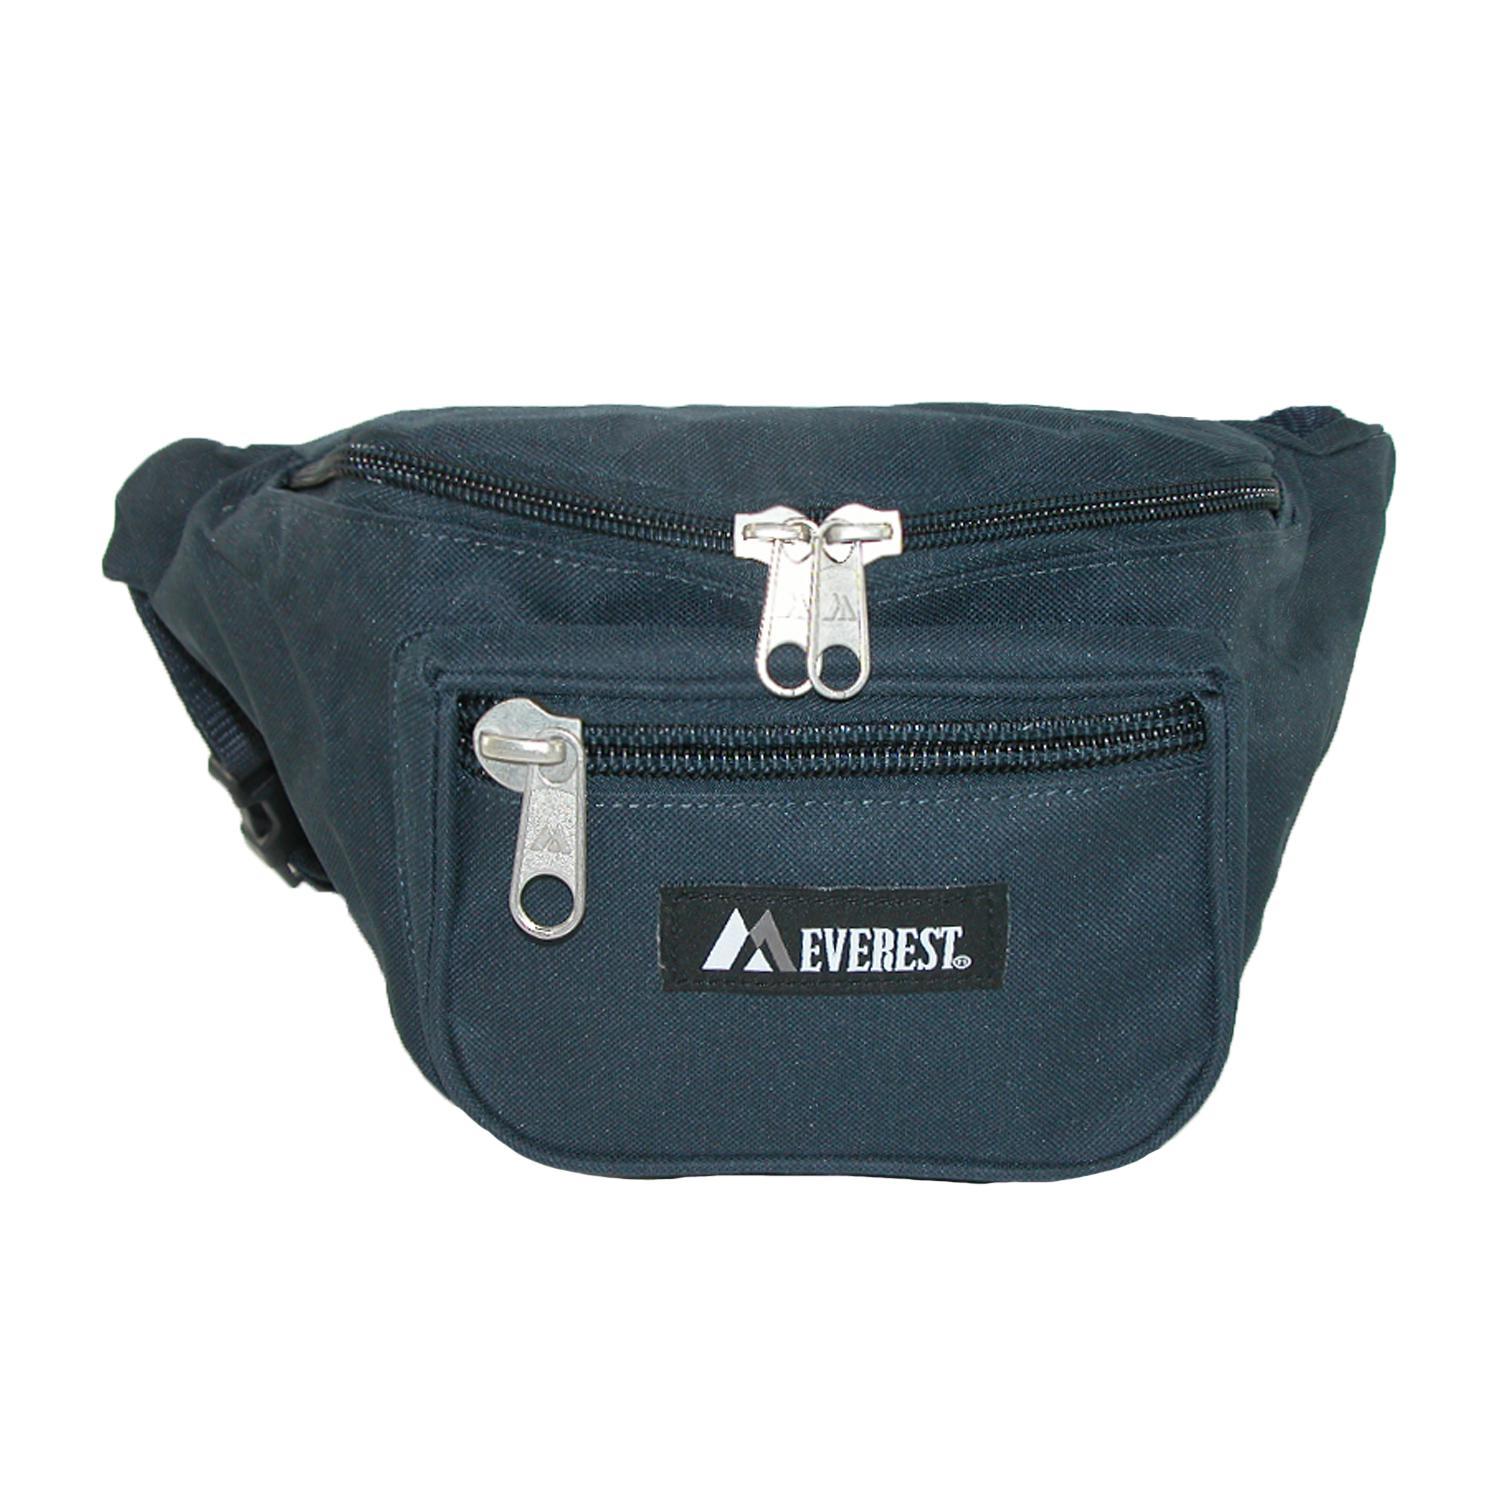 Everest Fabric Medium Size Waist Pack - image 2 of 2